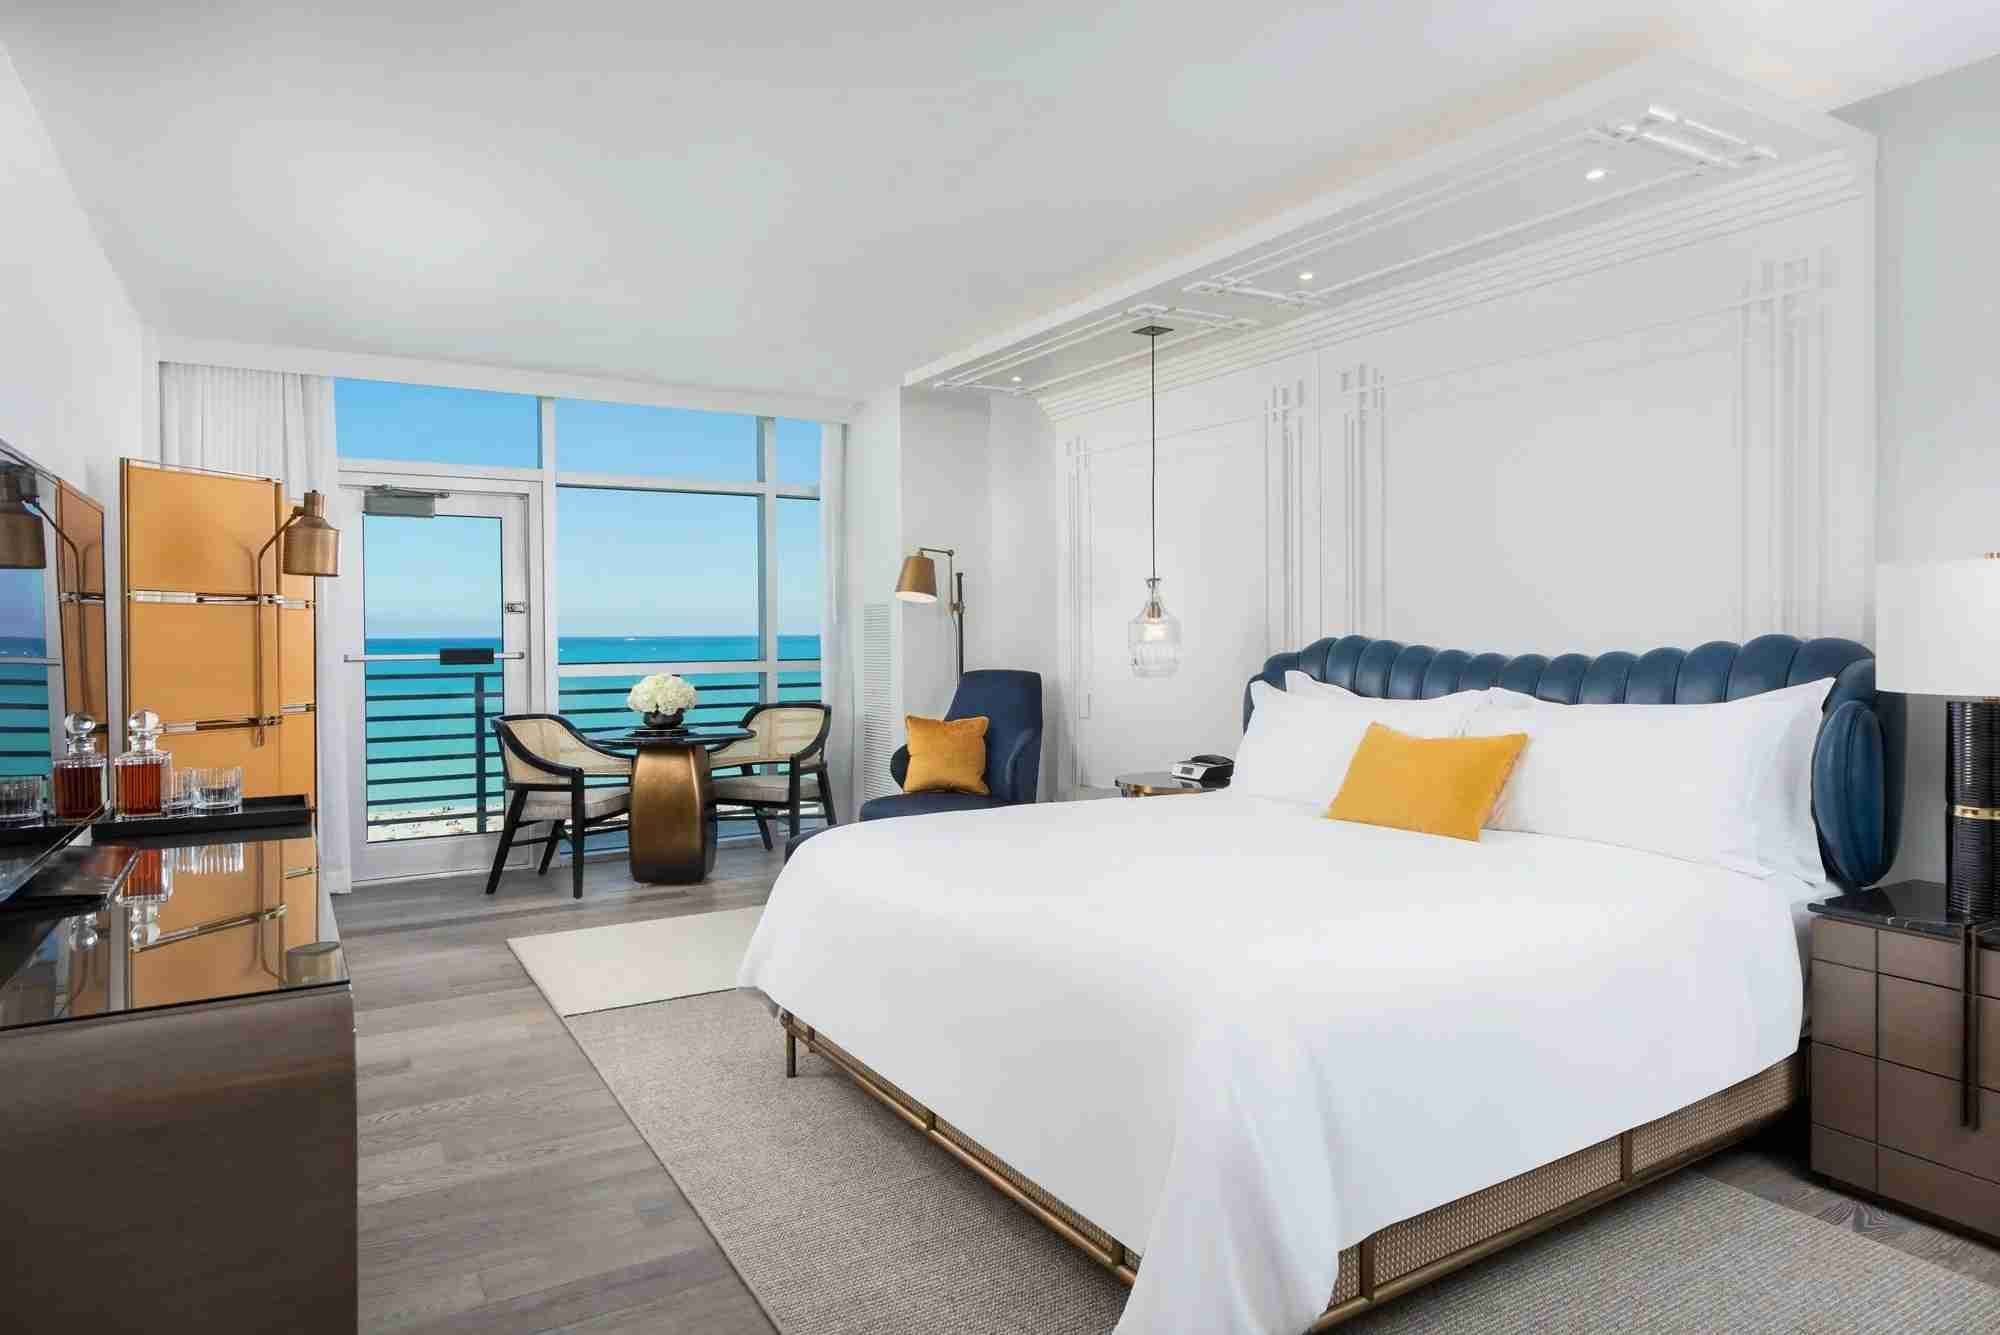 Image courtesy of The Ritz-Carlton, South Beach